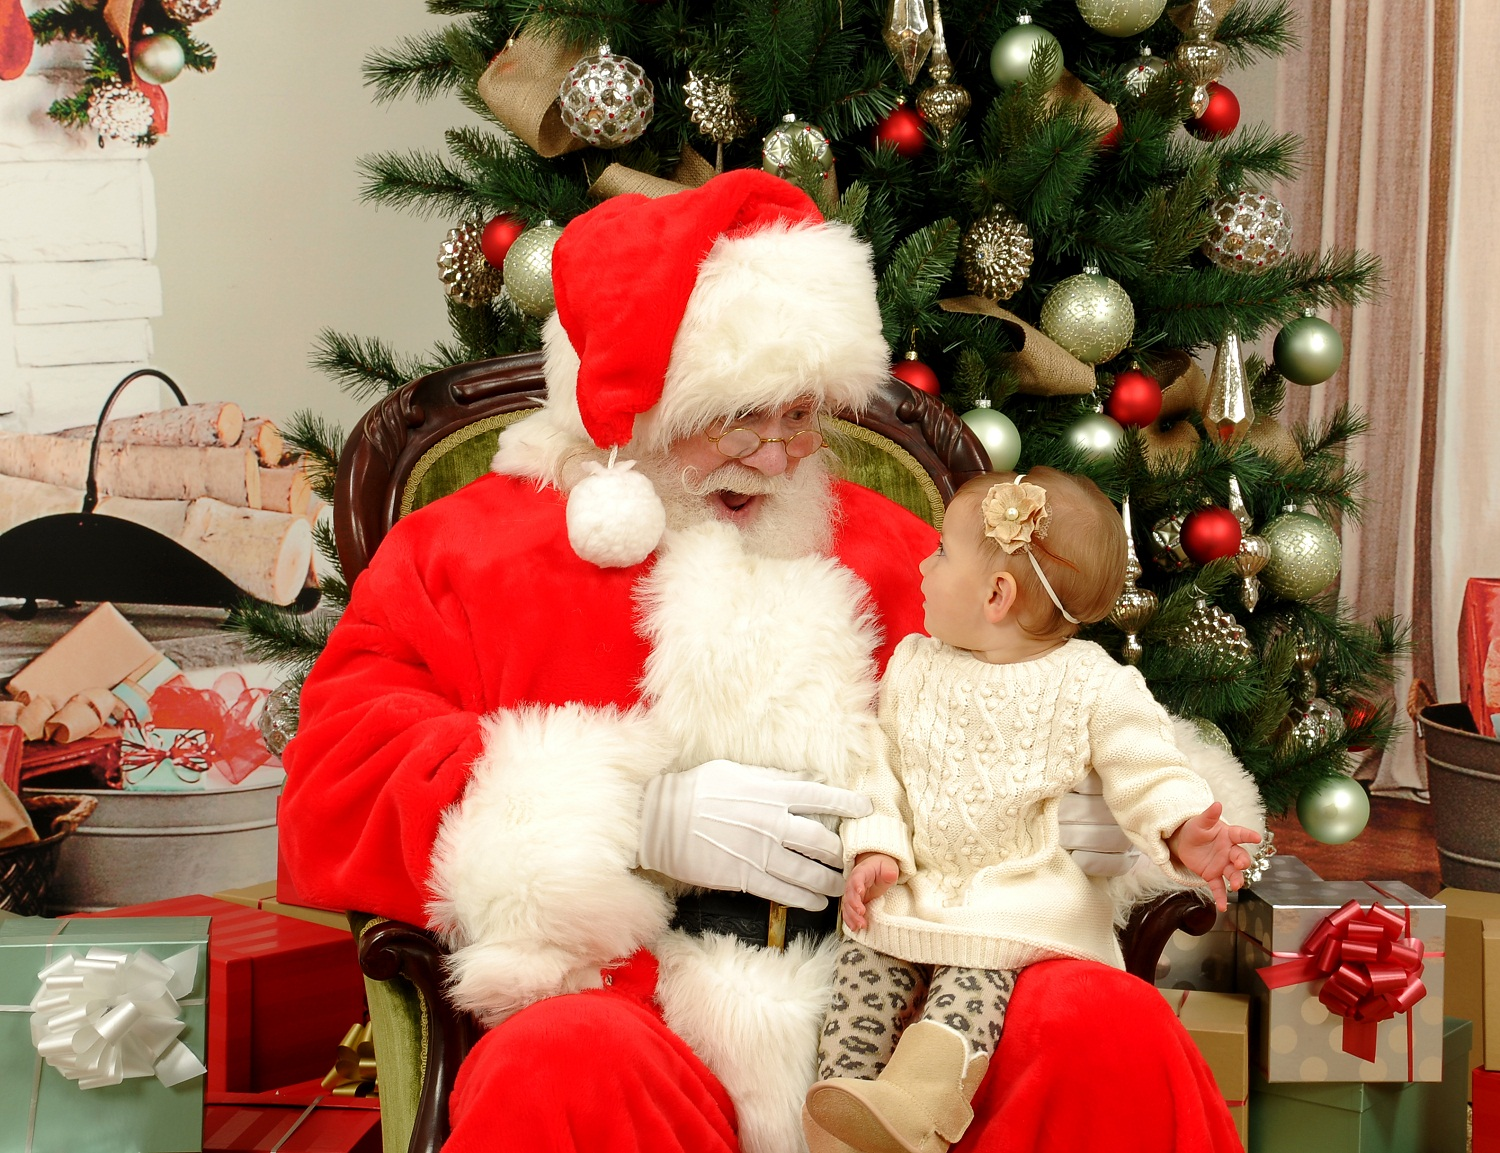 santa claus lesbian personals Meet single hindu women in santa claus are you ready to find a single hindu woman to tie the knot with meet single hindu women in santa claus interested in meeting new people to date.